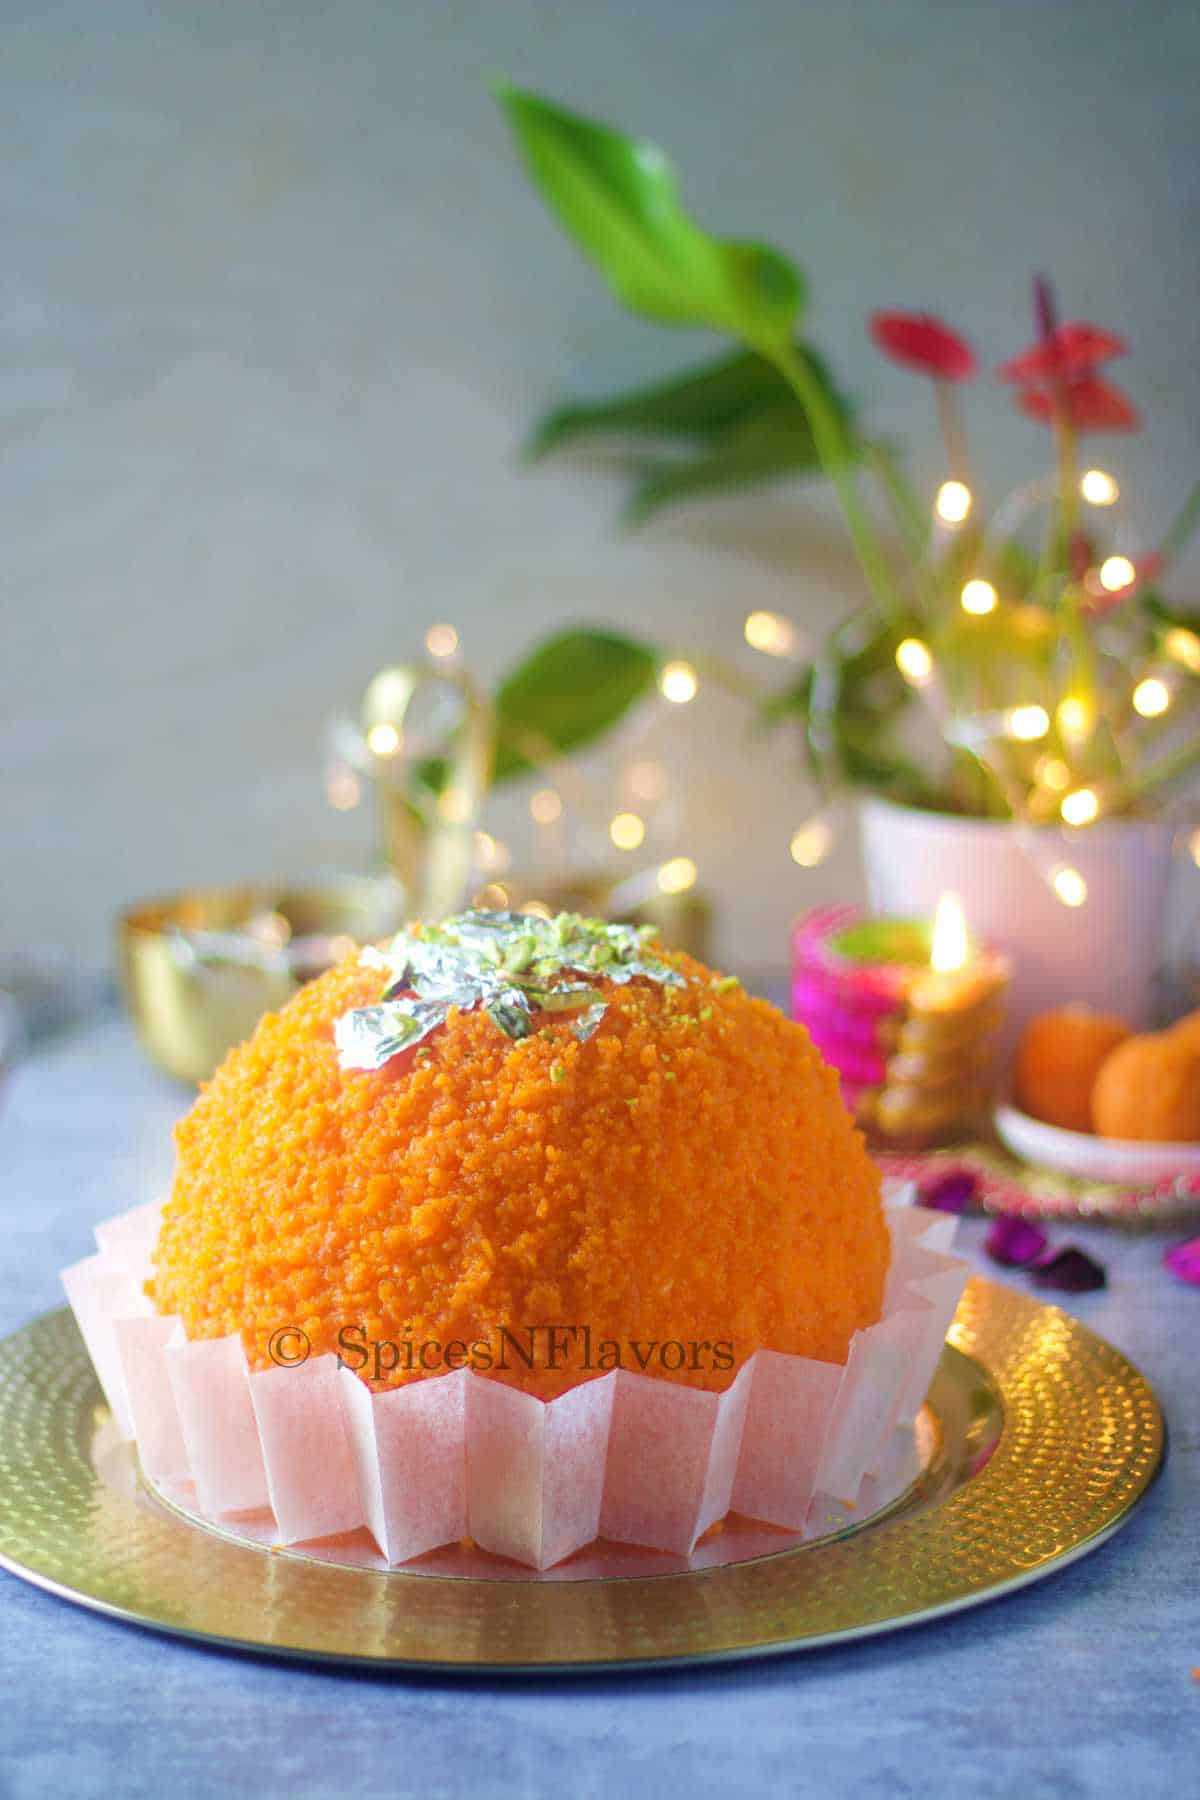 ladoo shape cake placed on a golden plate with lights and plant in the background